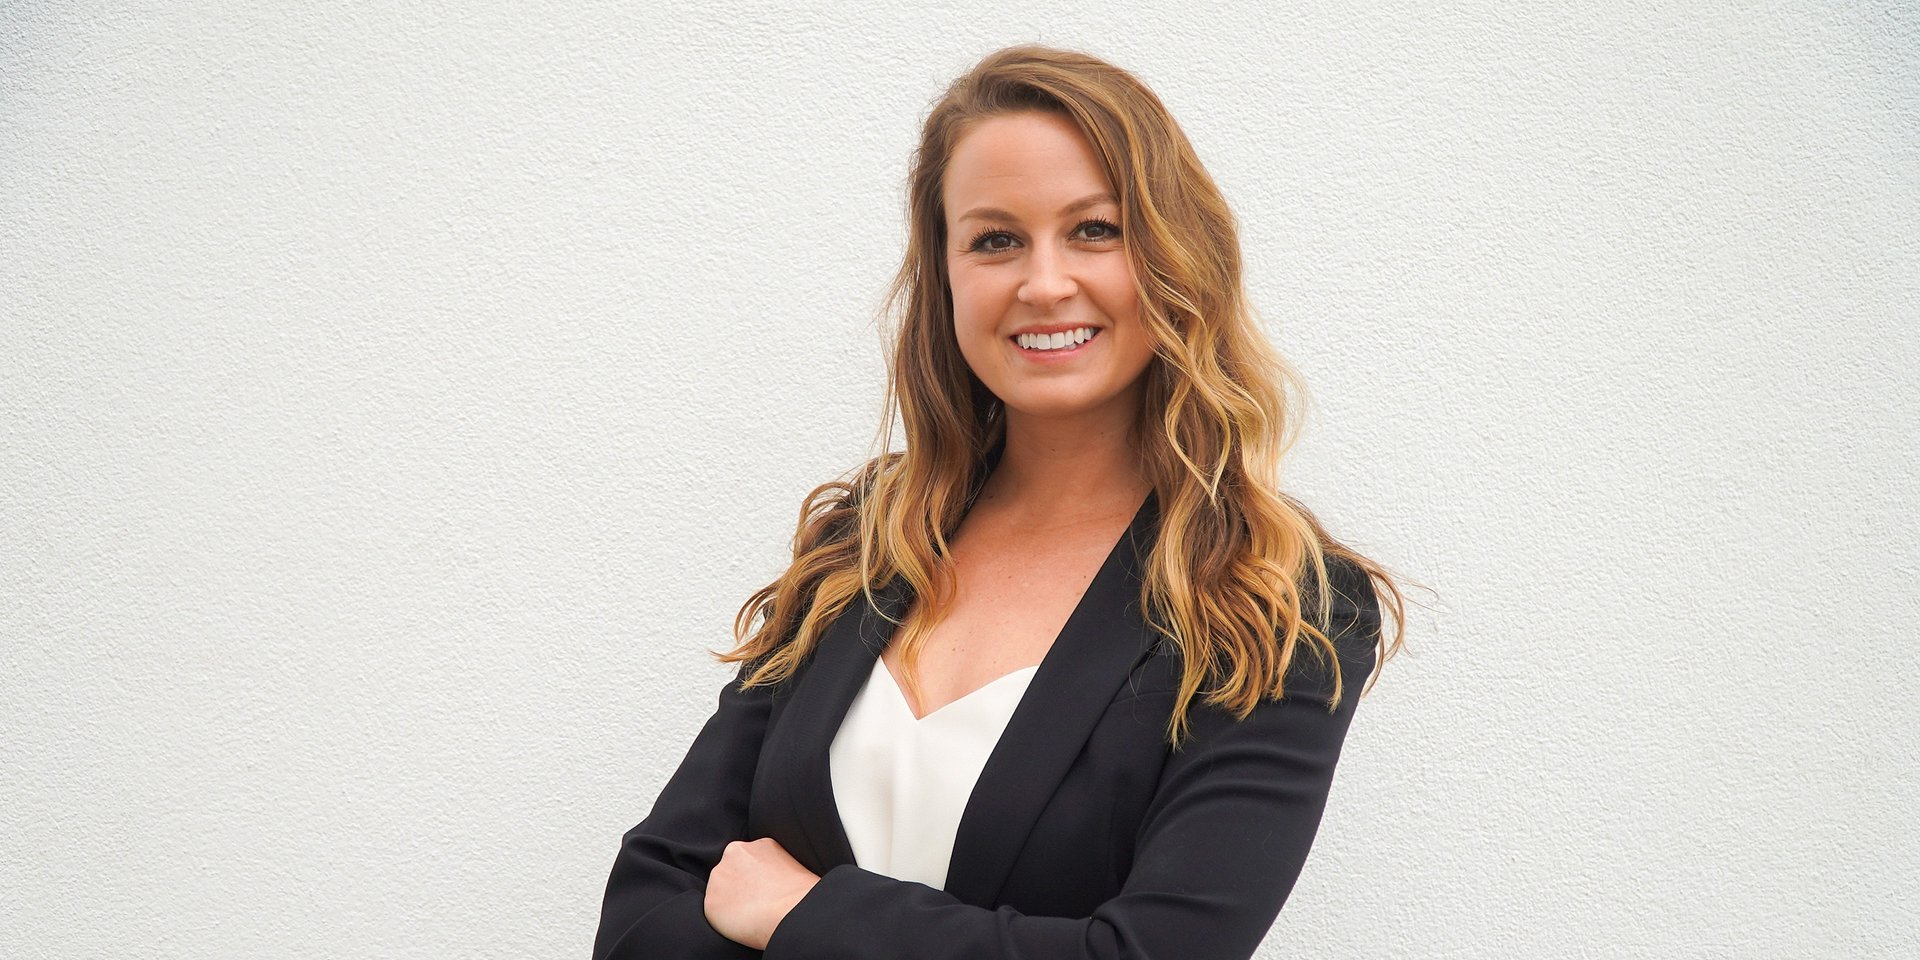 Angela Howard Affiliates with the Encinitas/La Costa Office of Coldwell Banker Realty